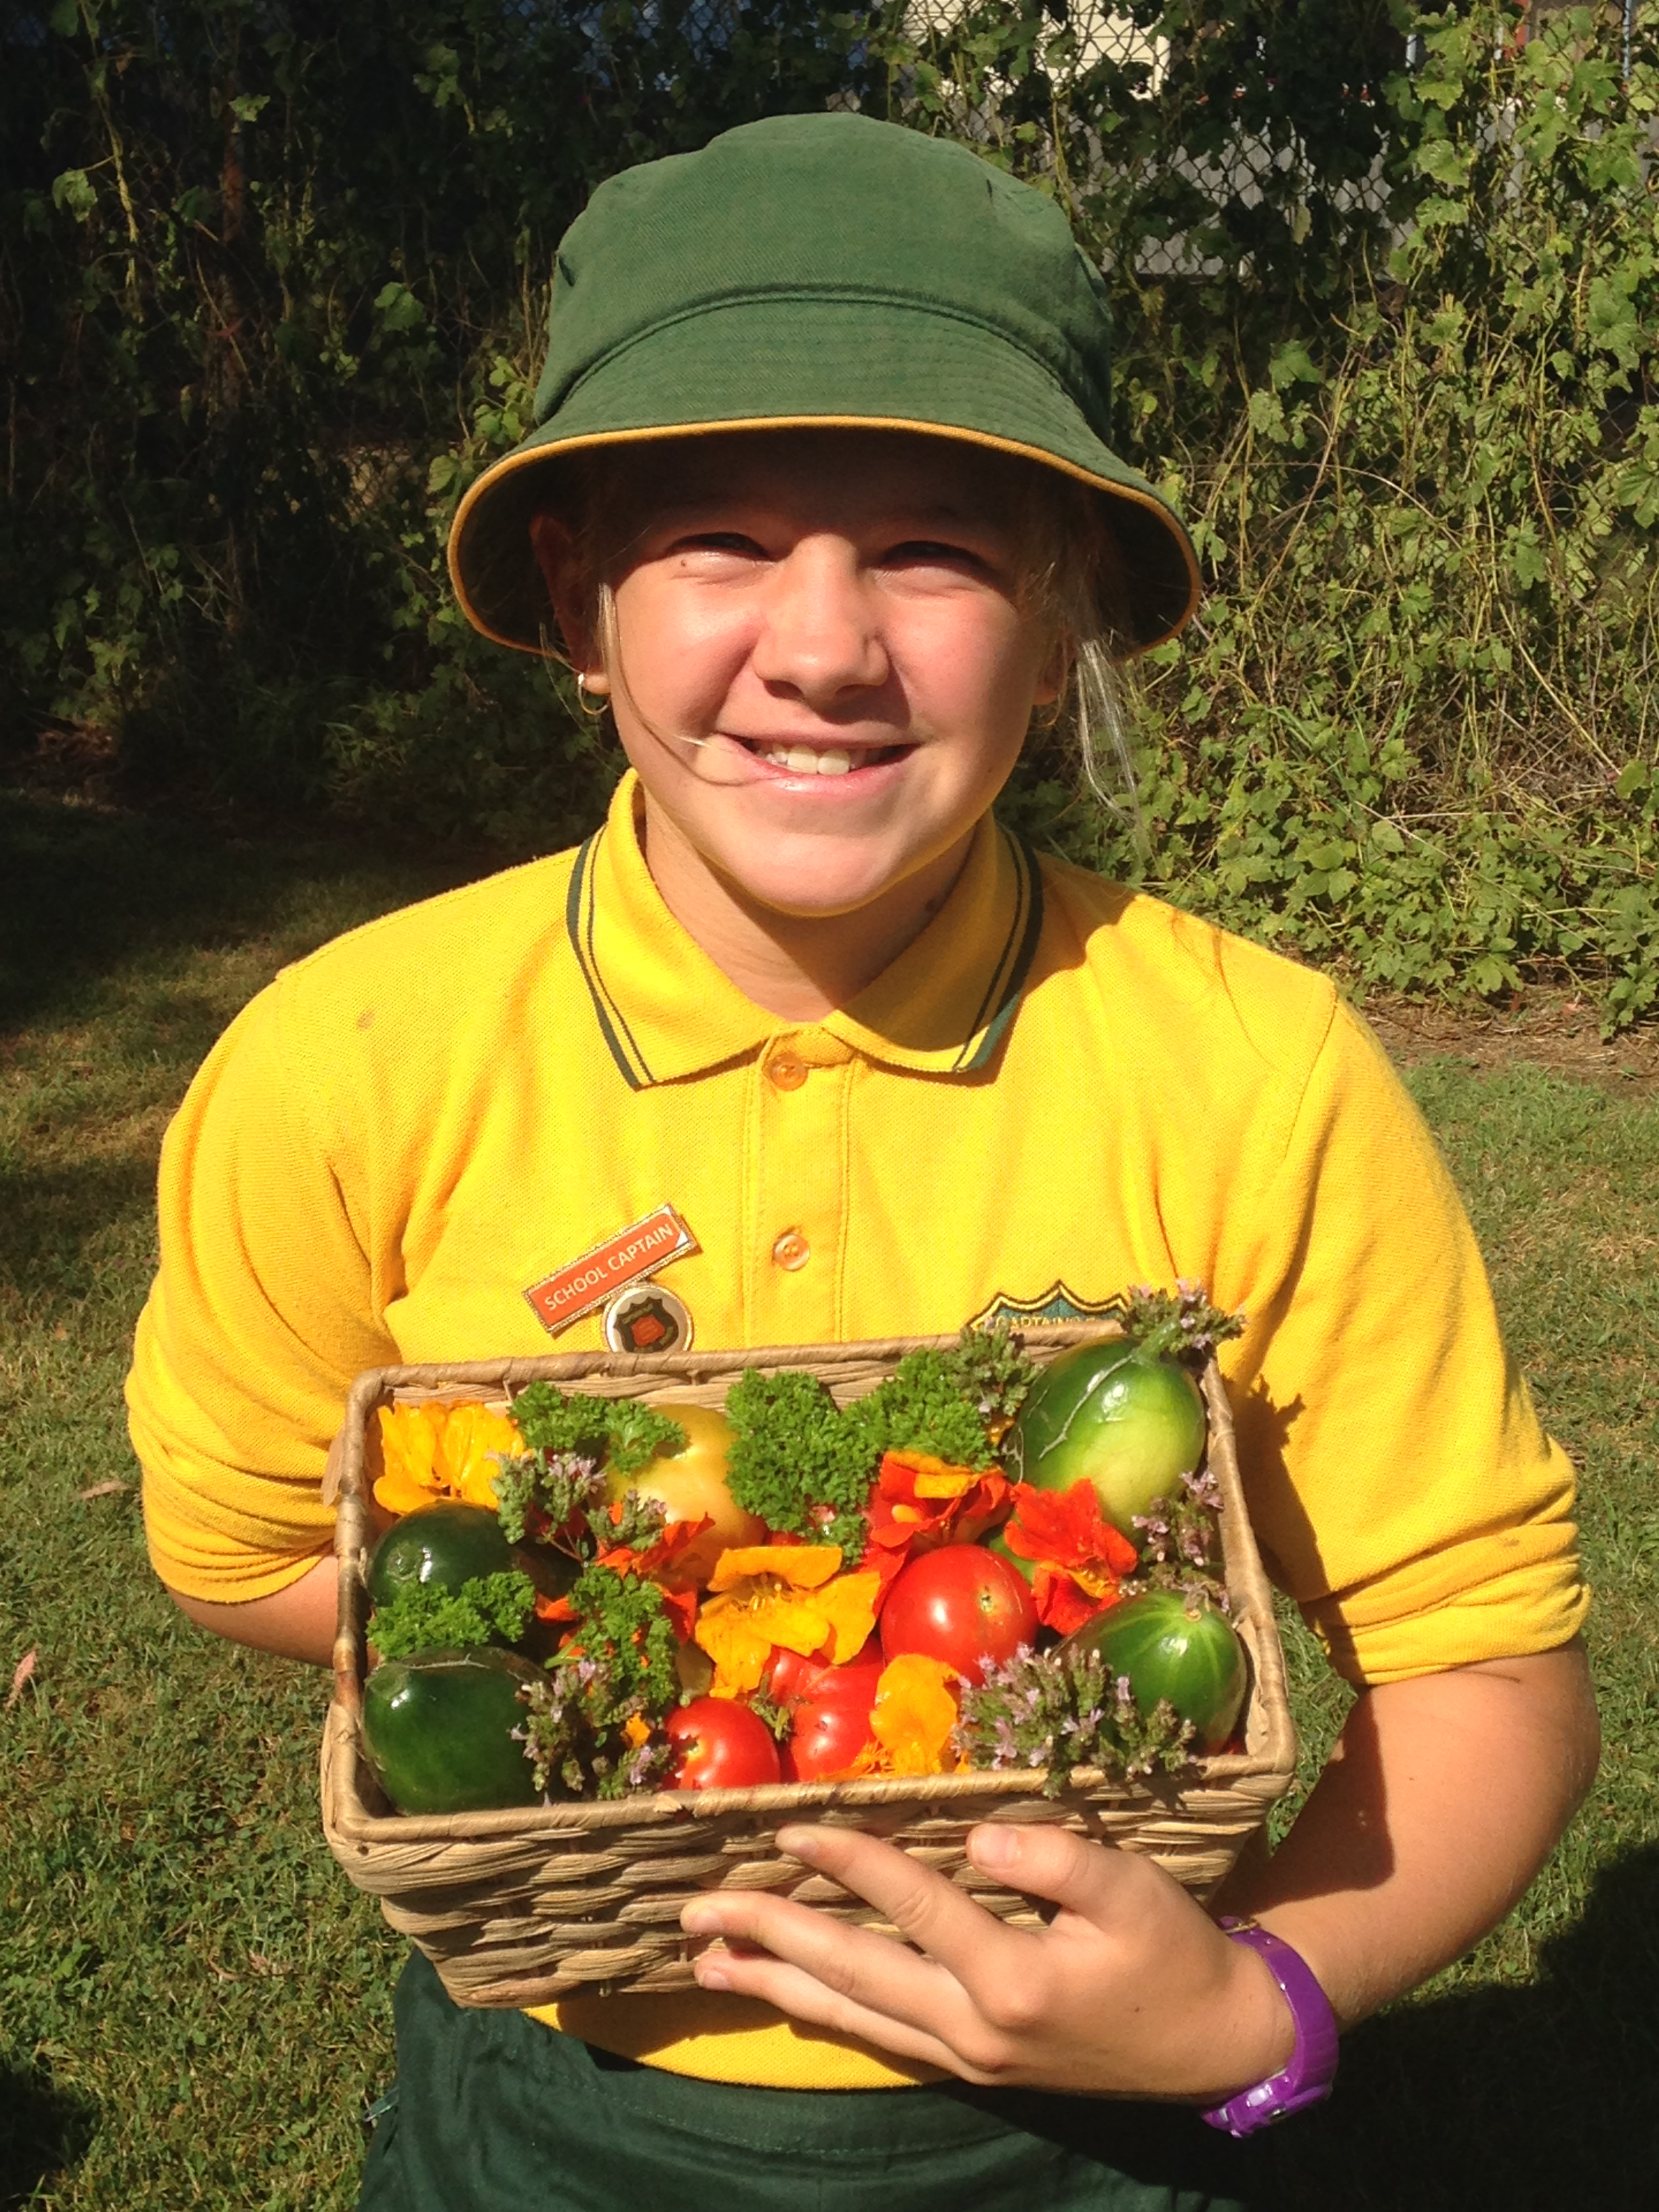 A young student showing off the produce from the school garden